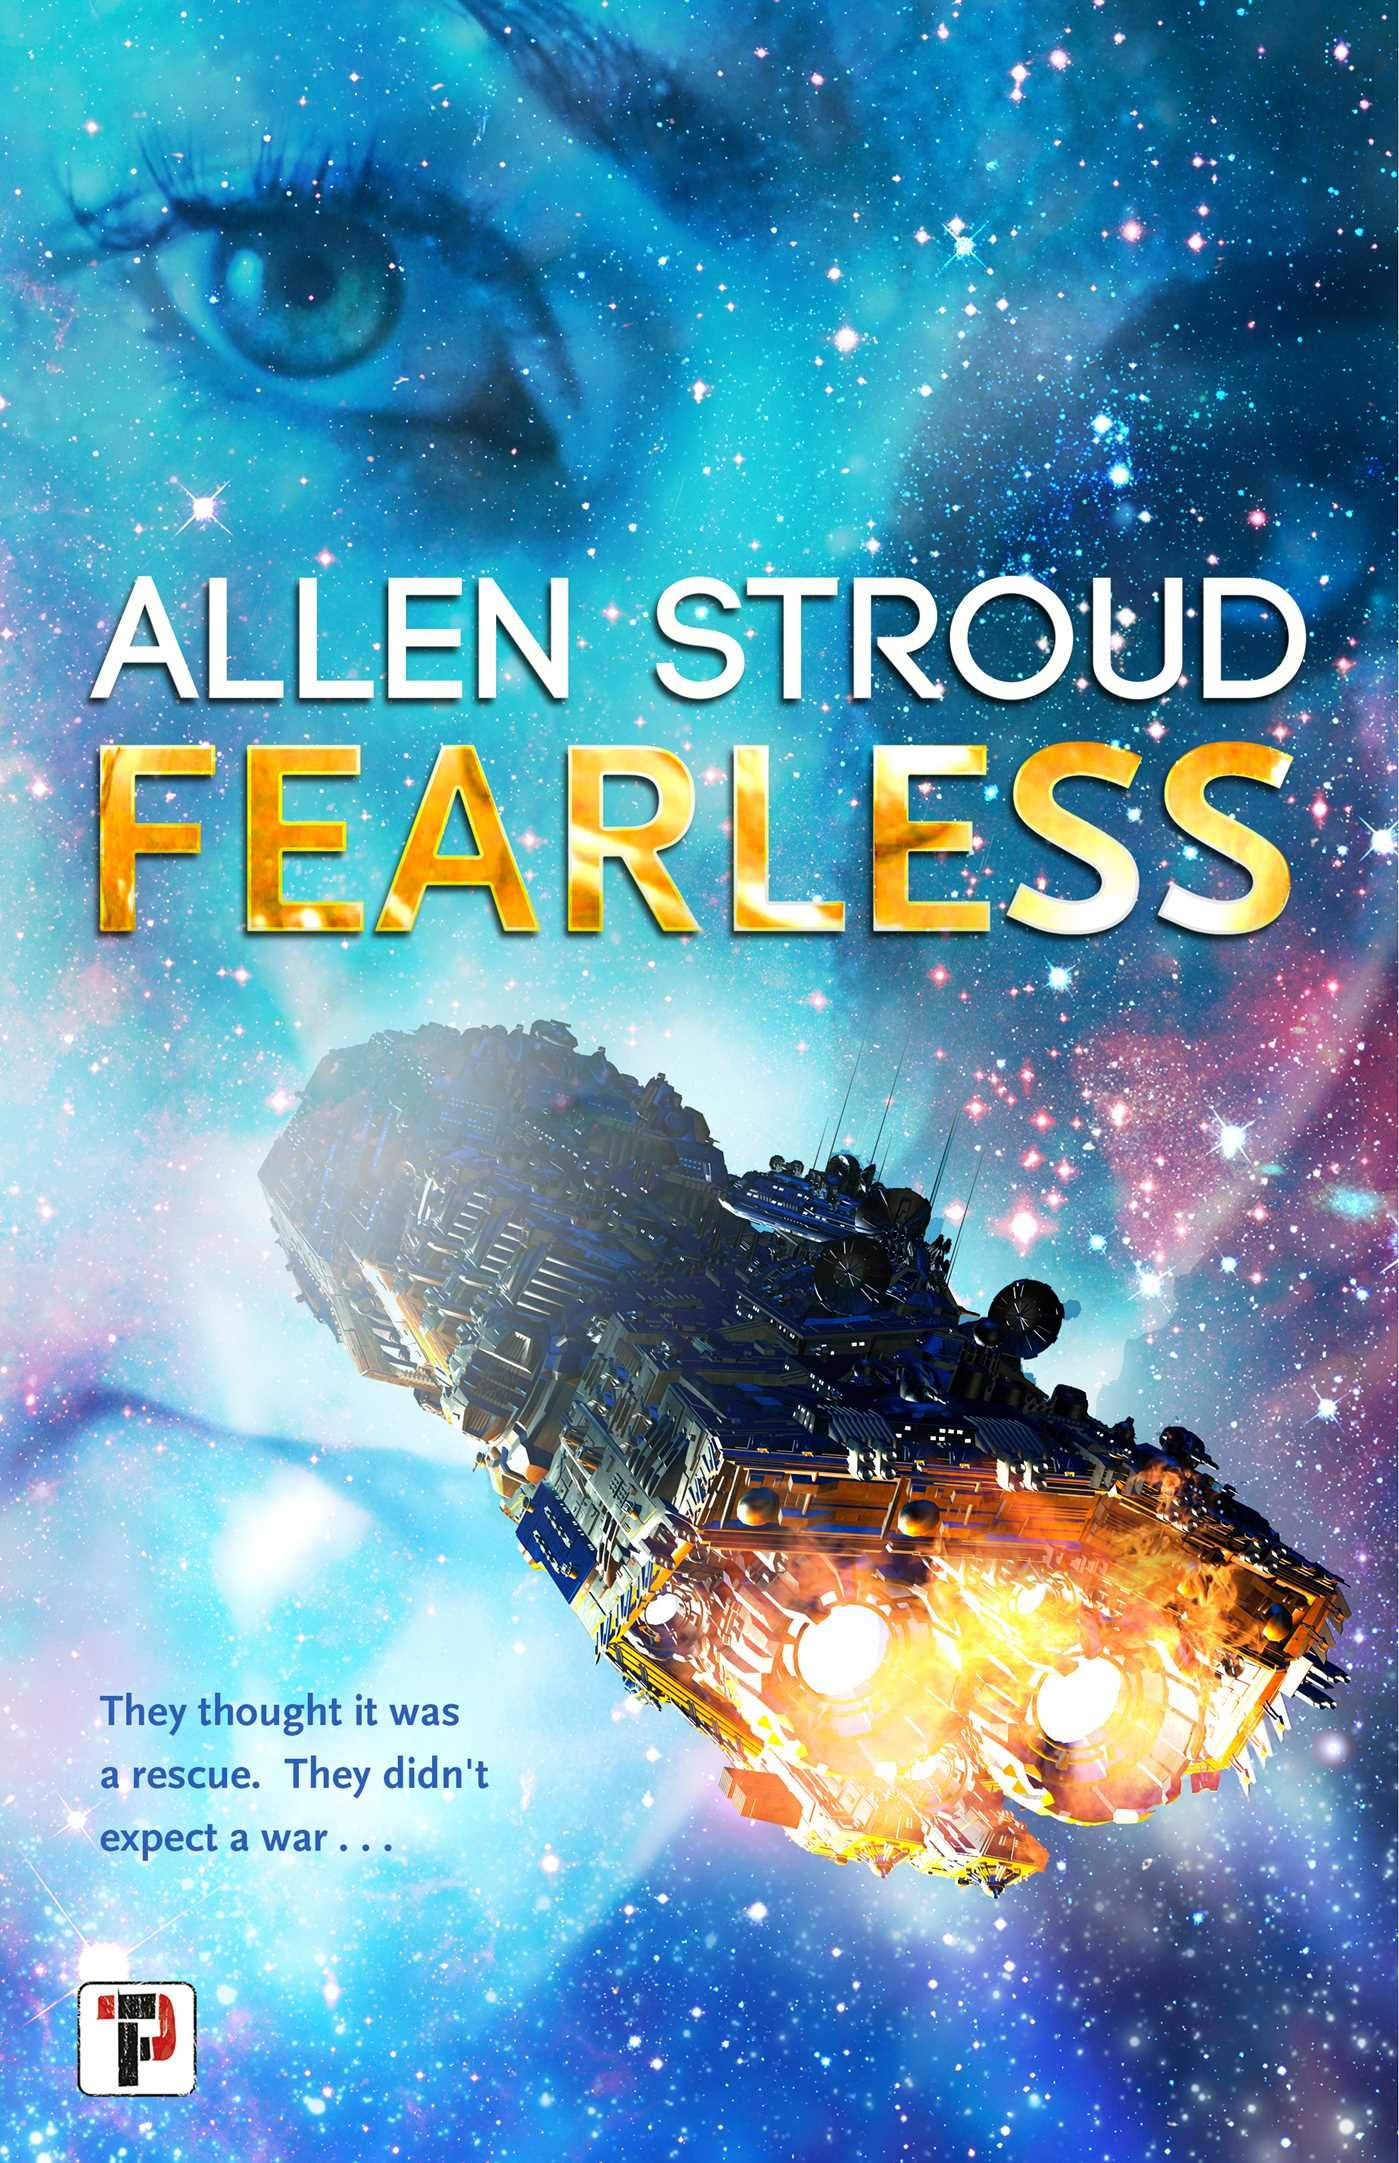 Cover Art for Fearless by Allen Stroud